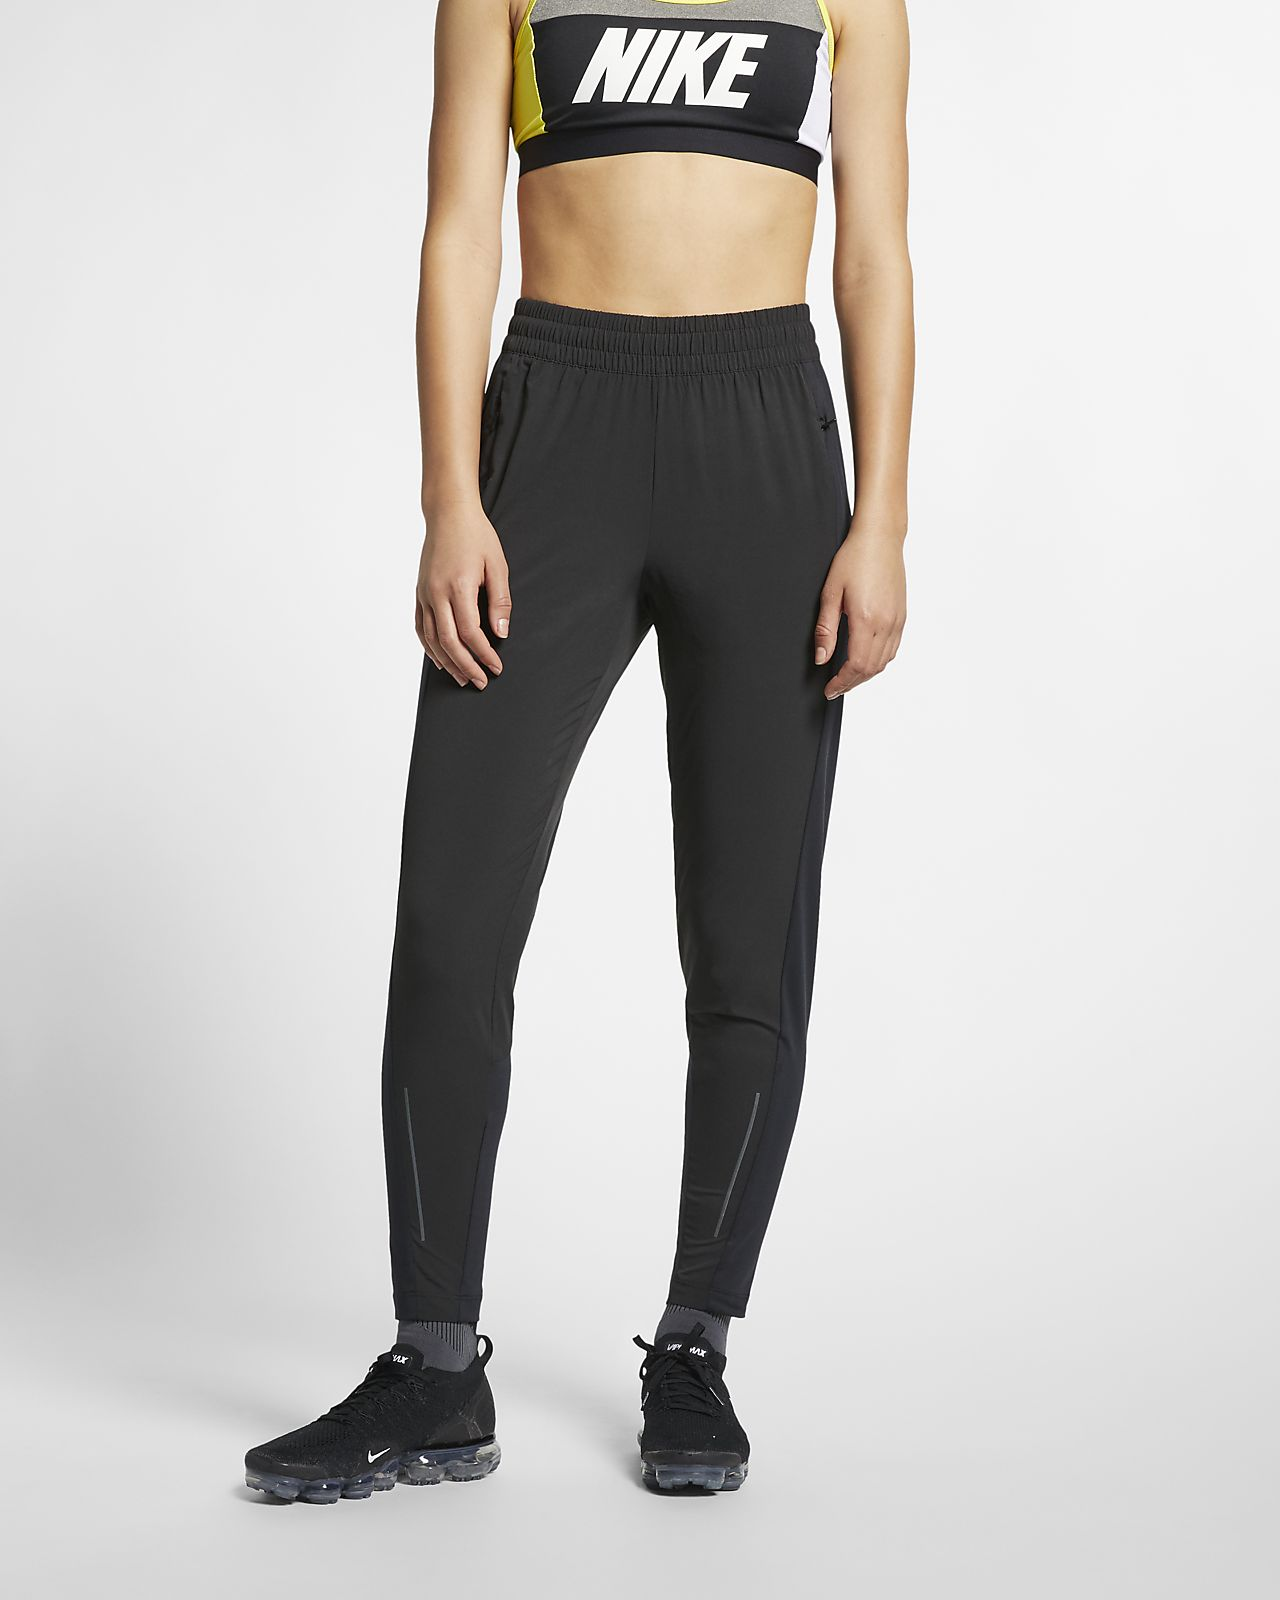 6632ee534c21 Nike Swift Women s Running Trousers. Nike.com MA